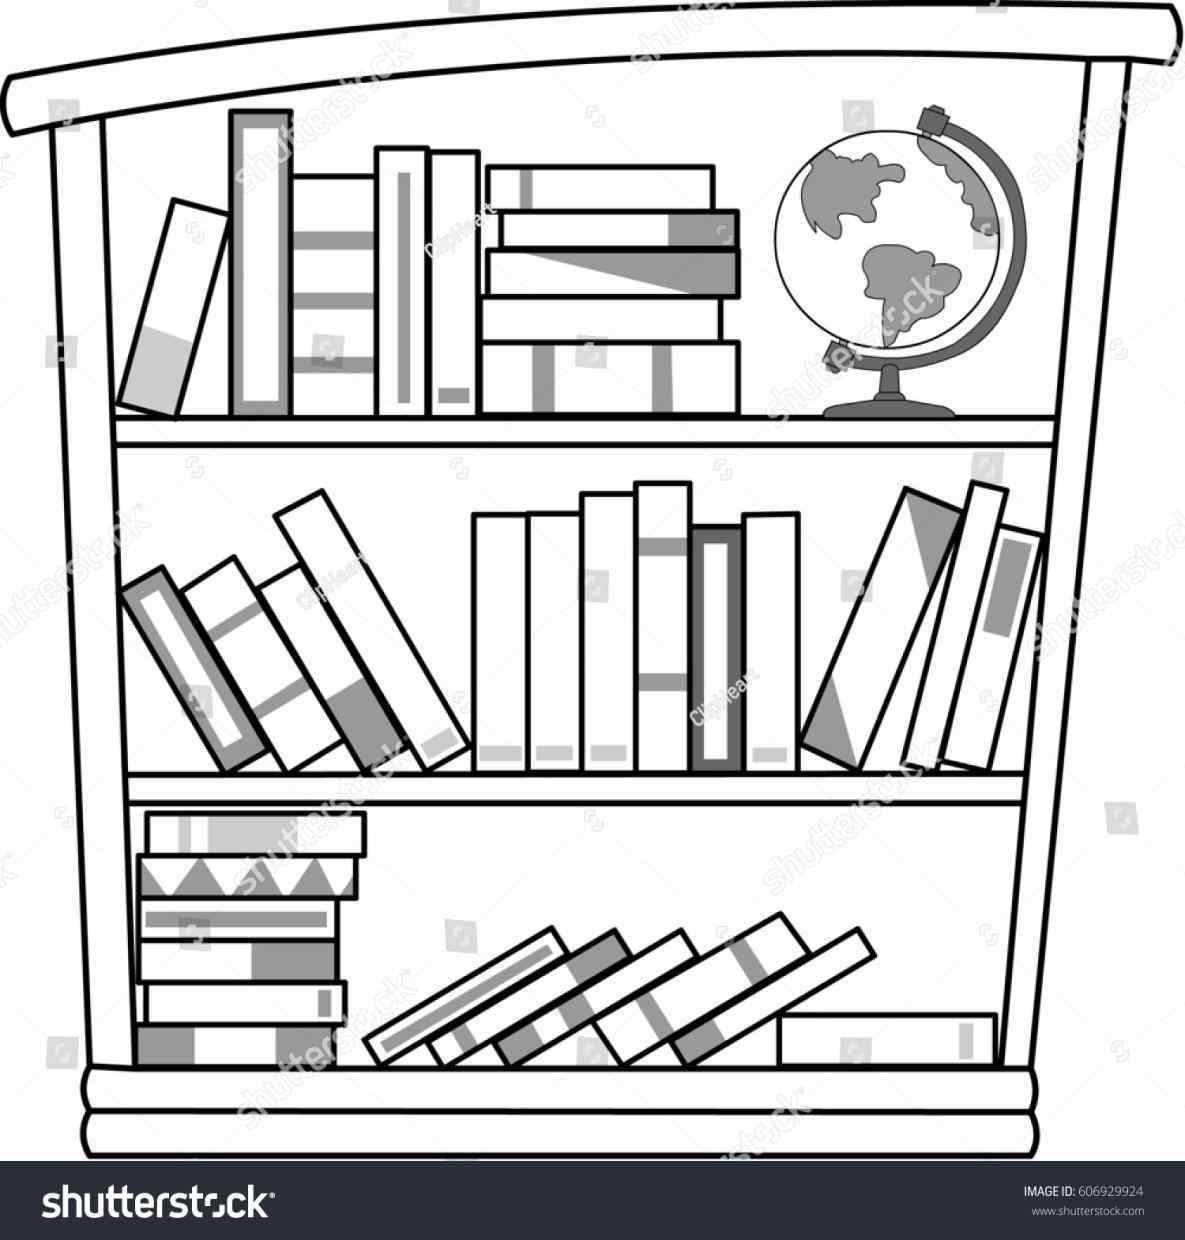 Bookshelf clipart black and white. Letters shelf icon free